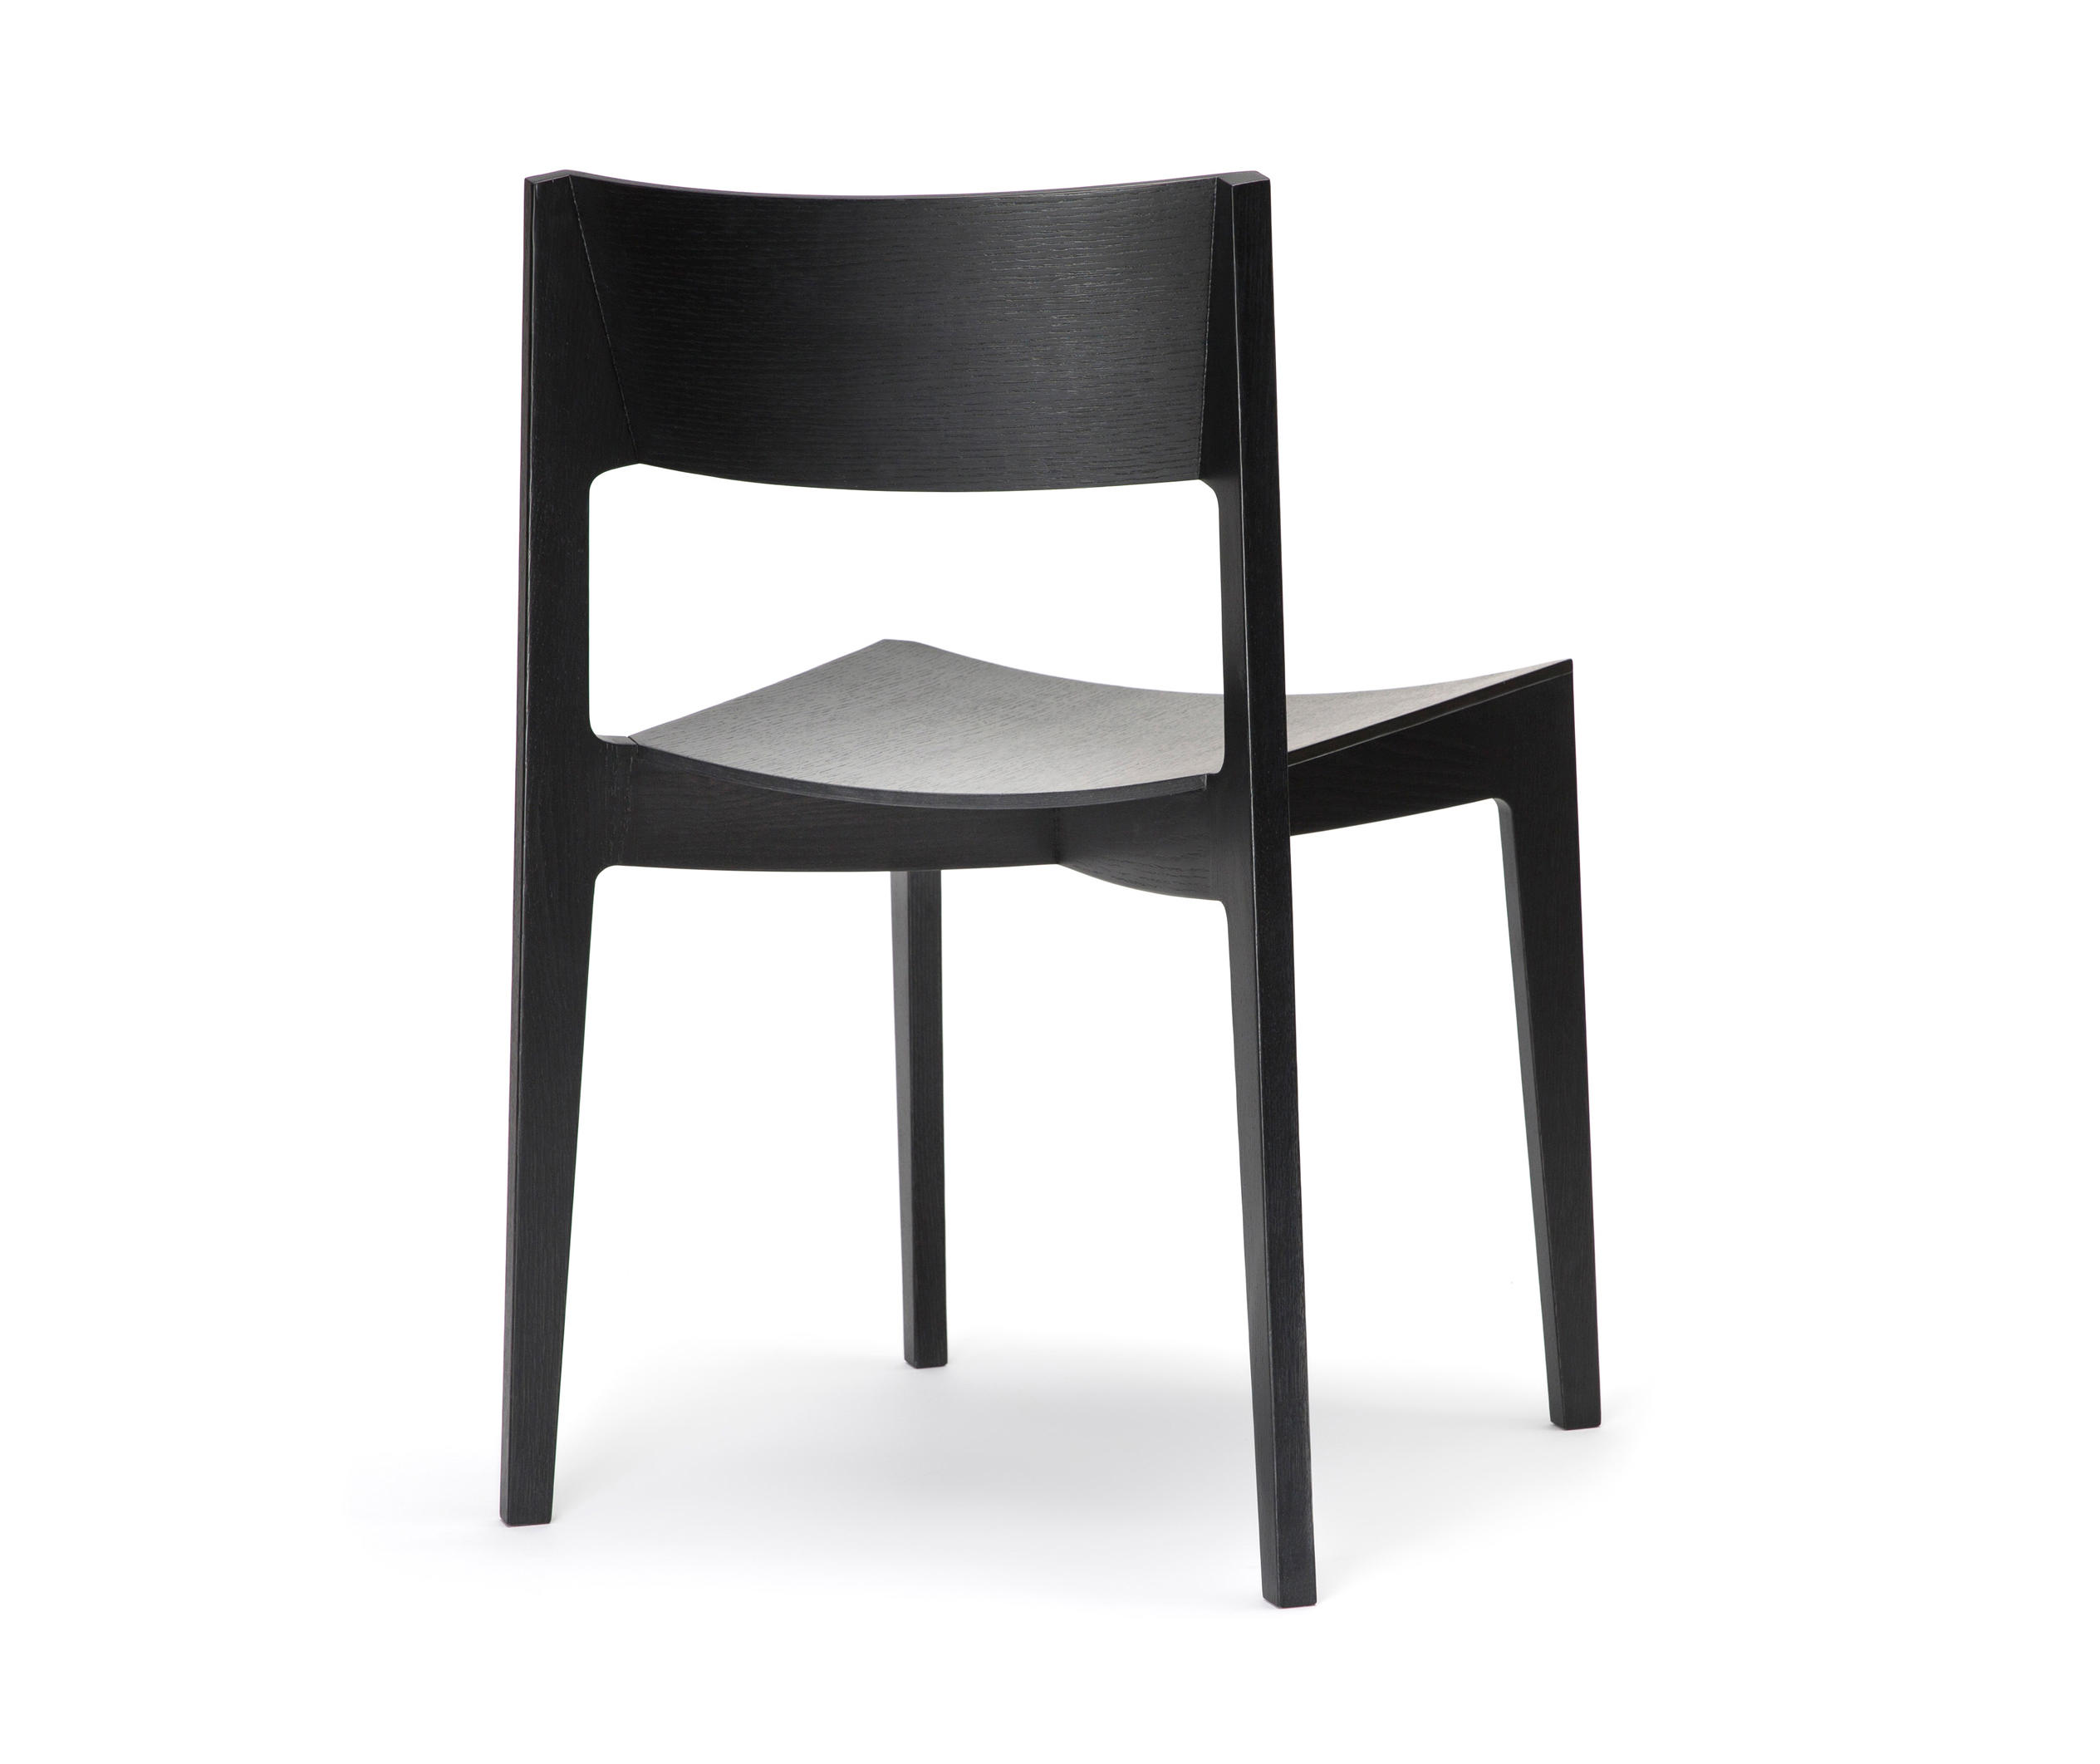 Elementary Chair Chairs From Feelgood Designs Architonic